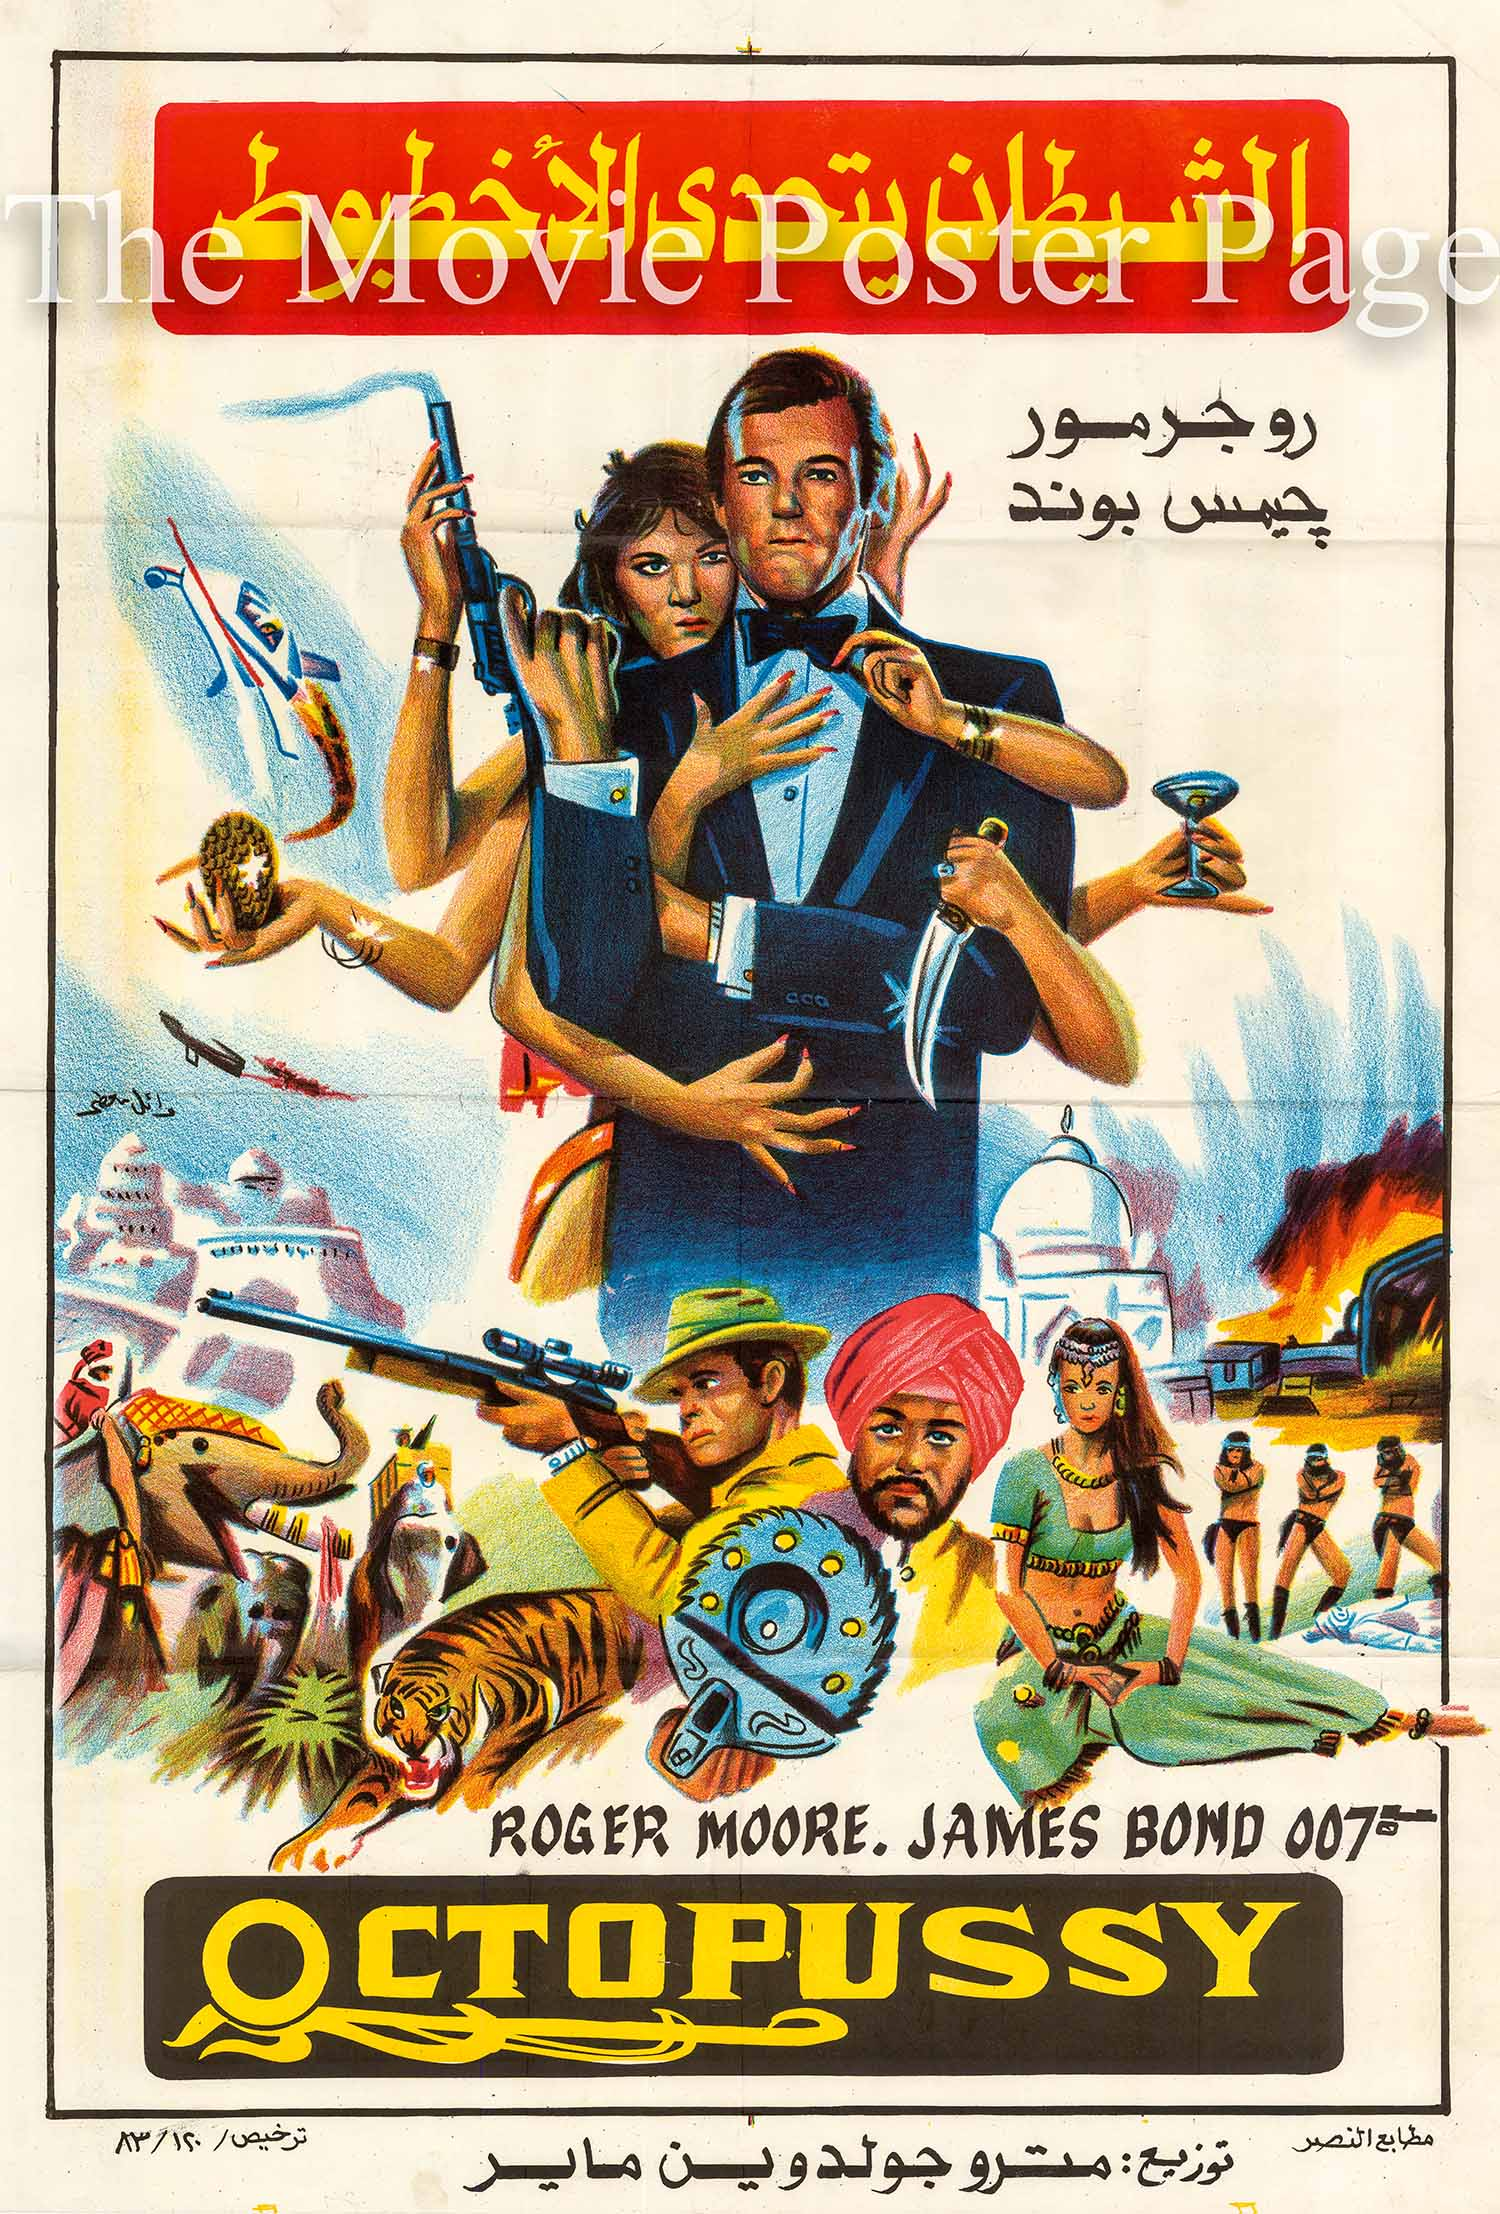 Pictured is an Egyptian promotional poster for the 1983 John Glen film Octopussy starring Roger Moore as James Bond.